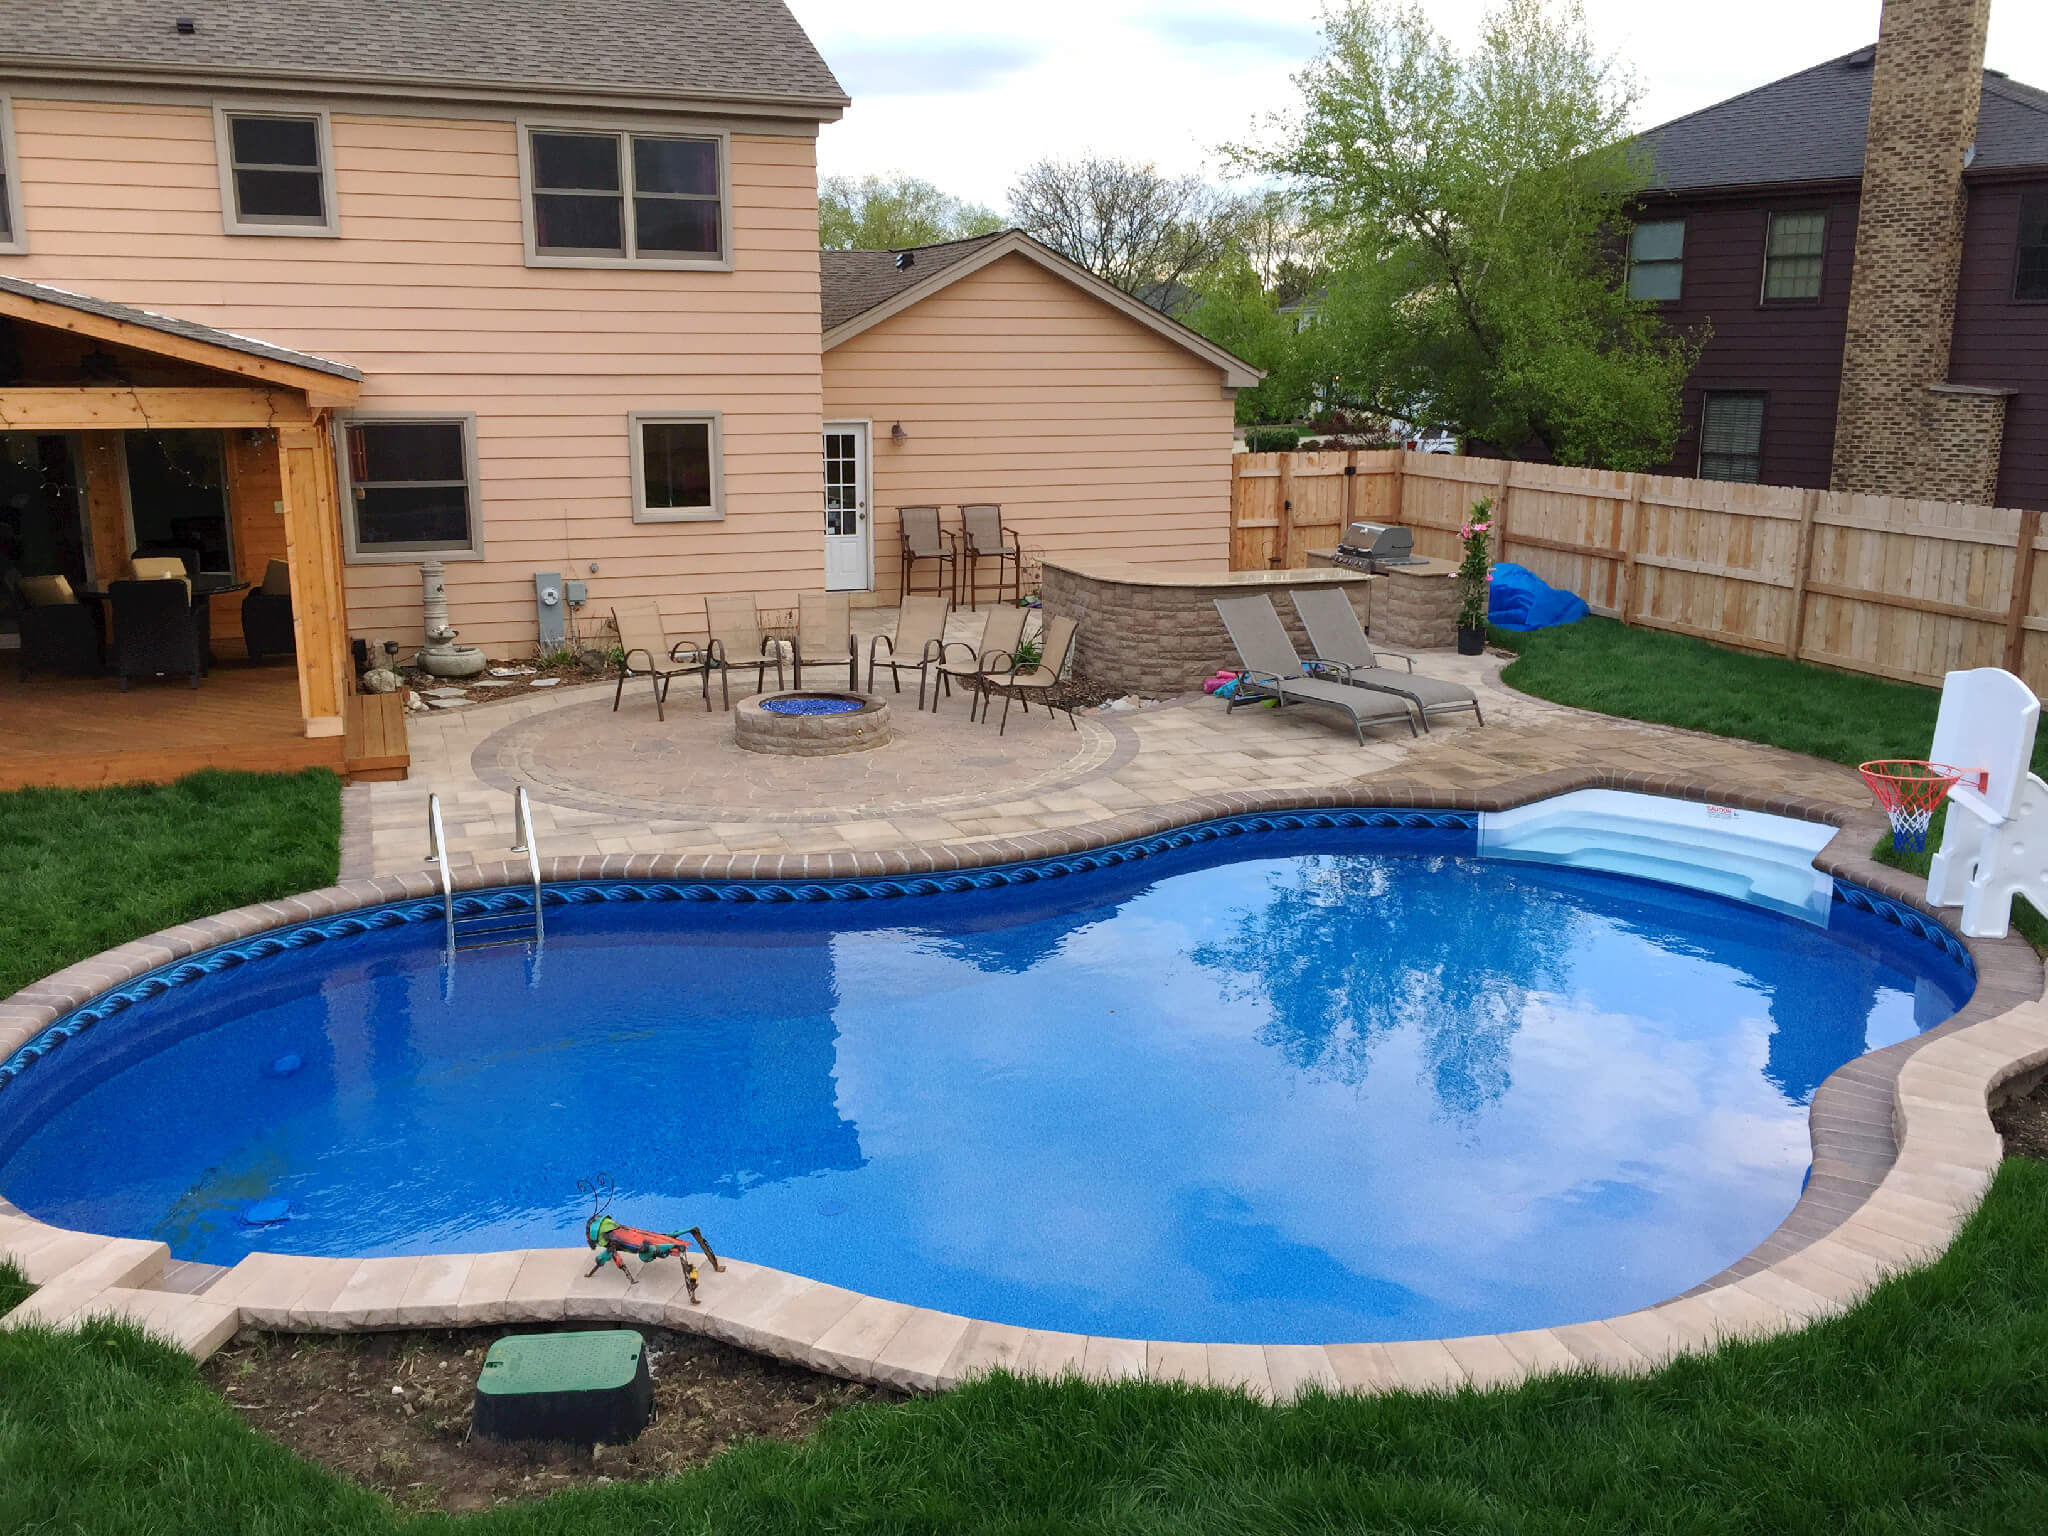 Custom patio pool deck with fire pit